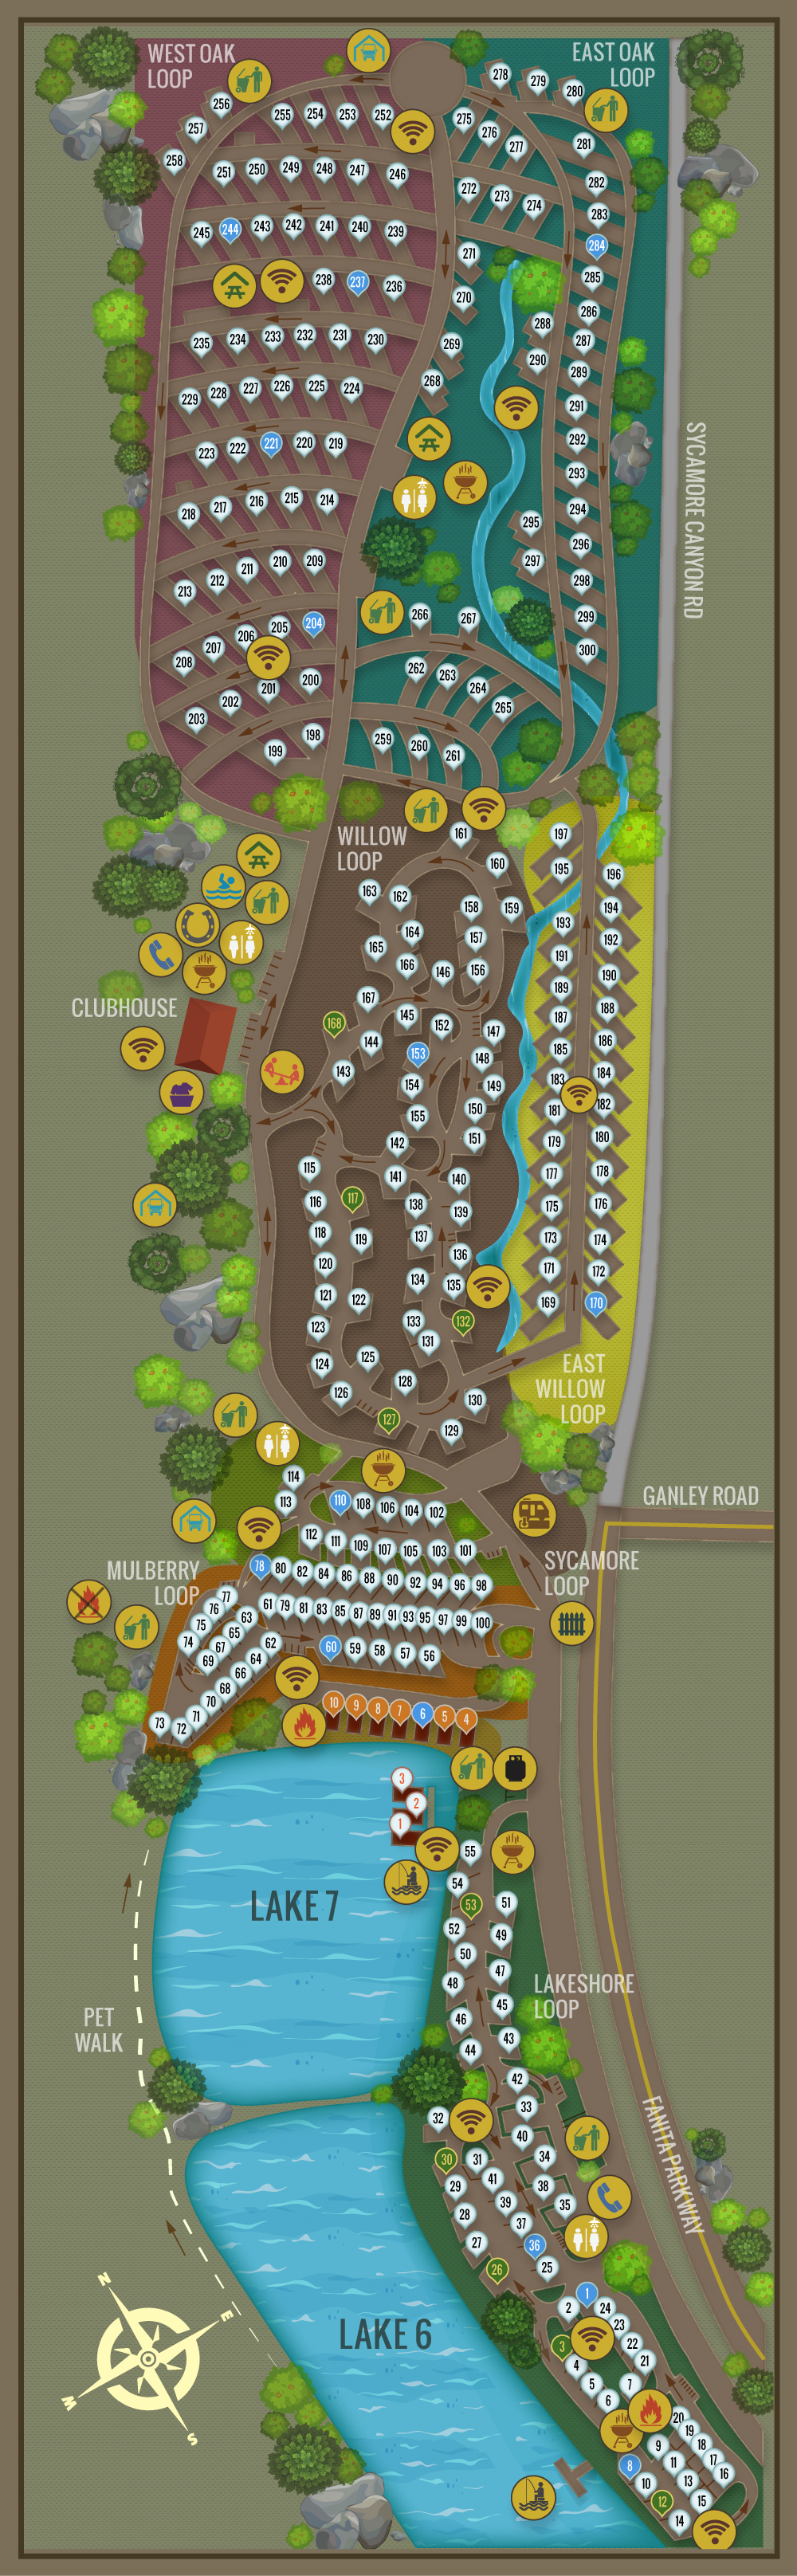 Campsite Map New - Santee Lakes